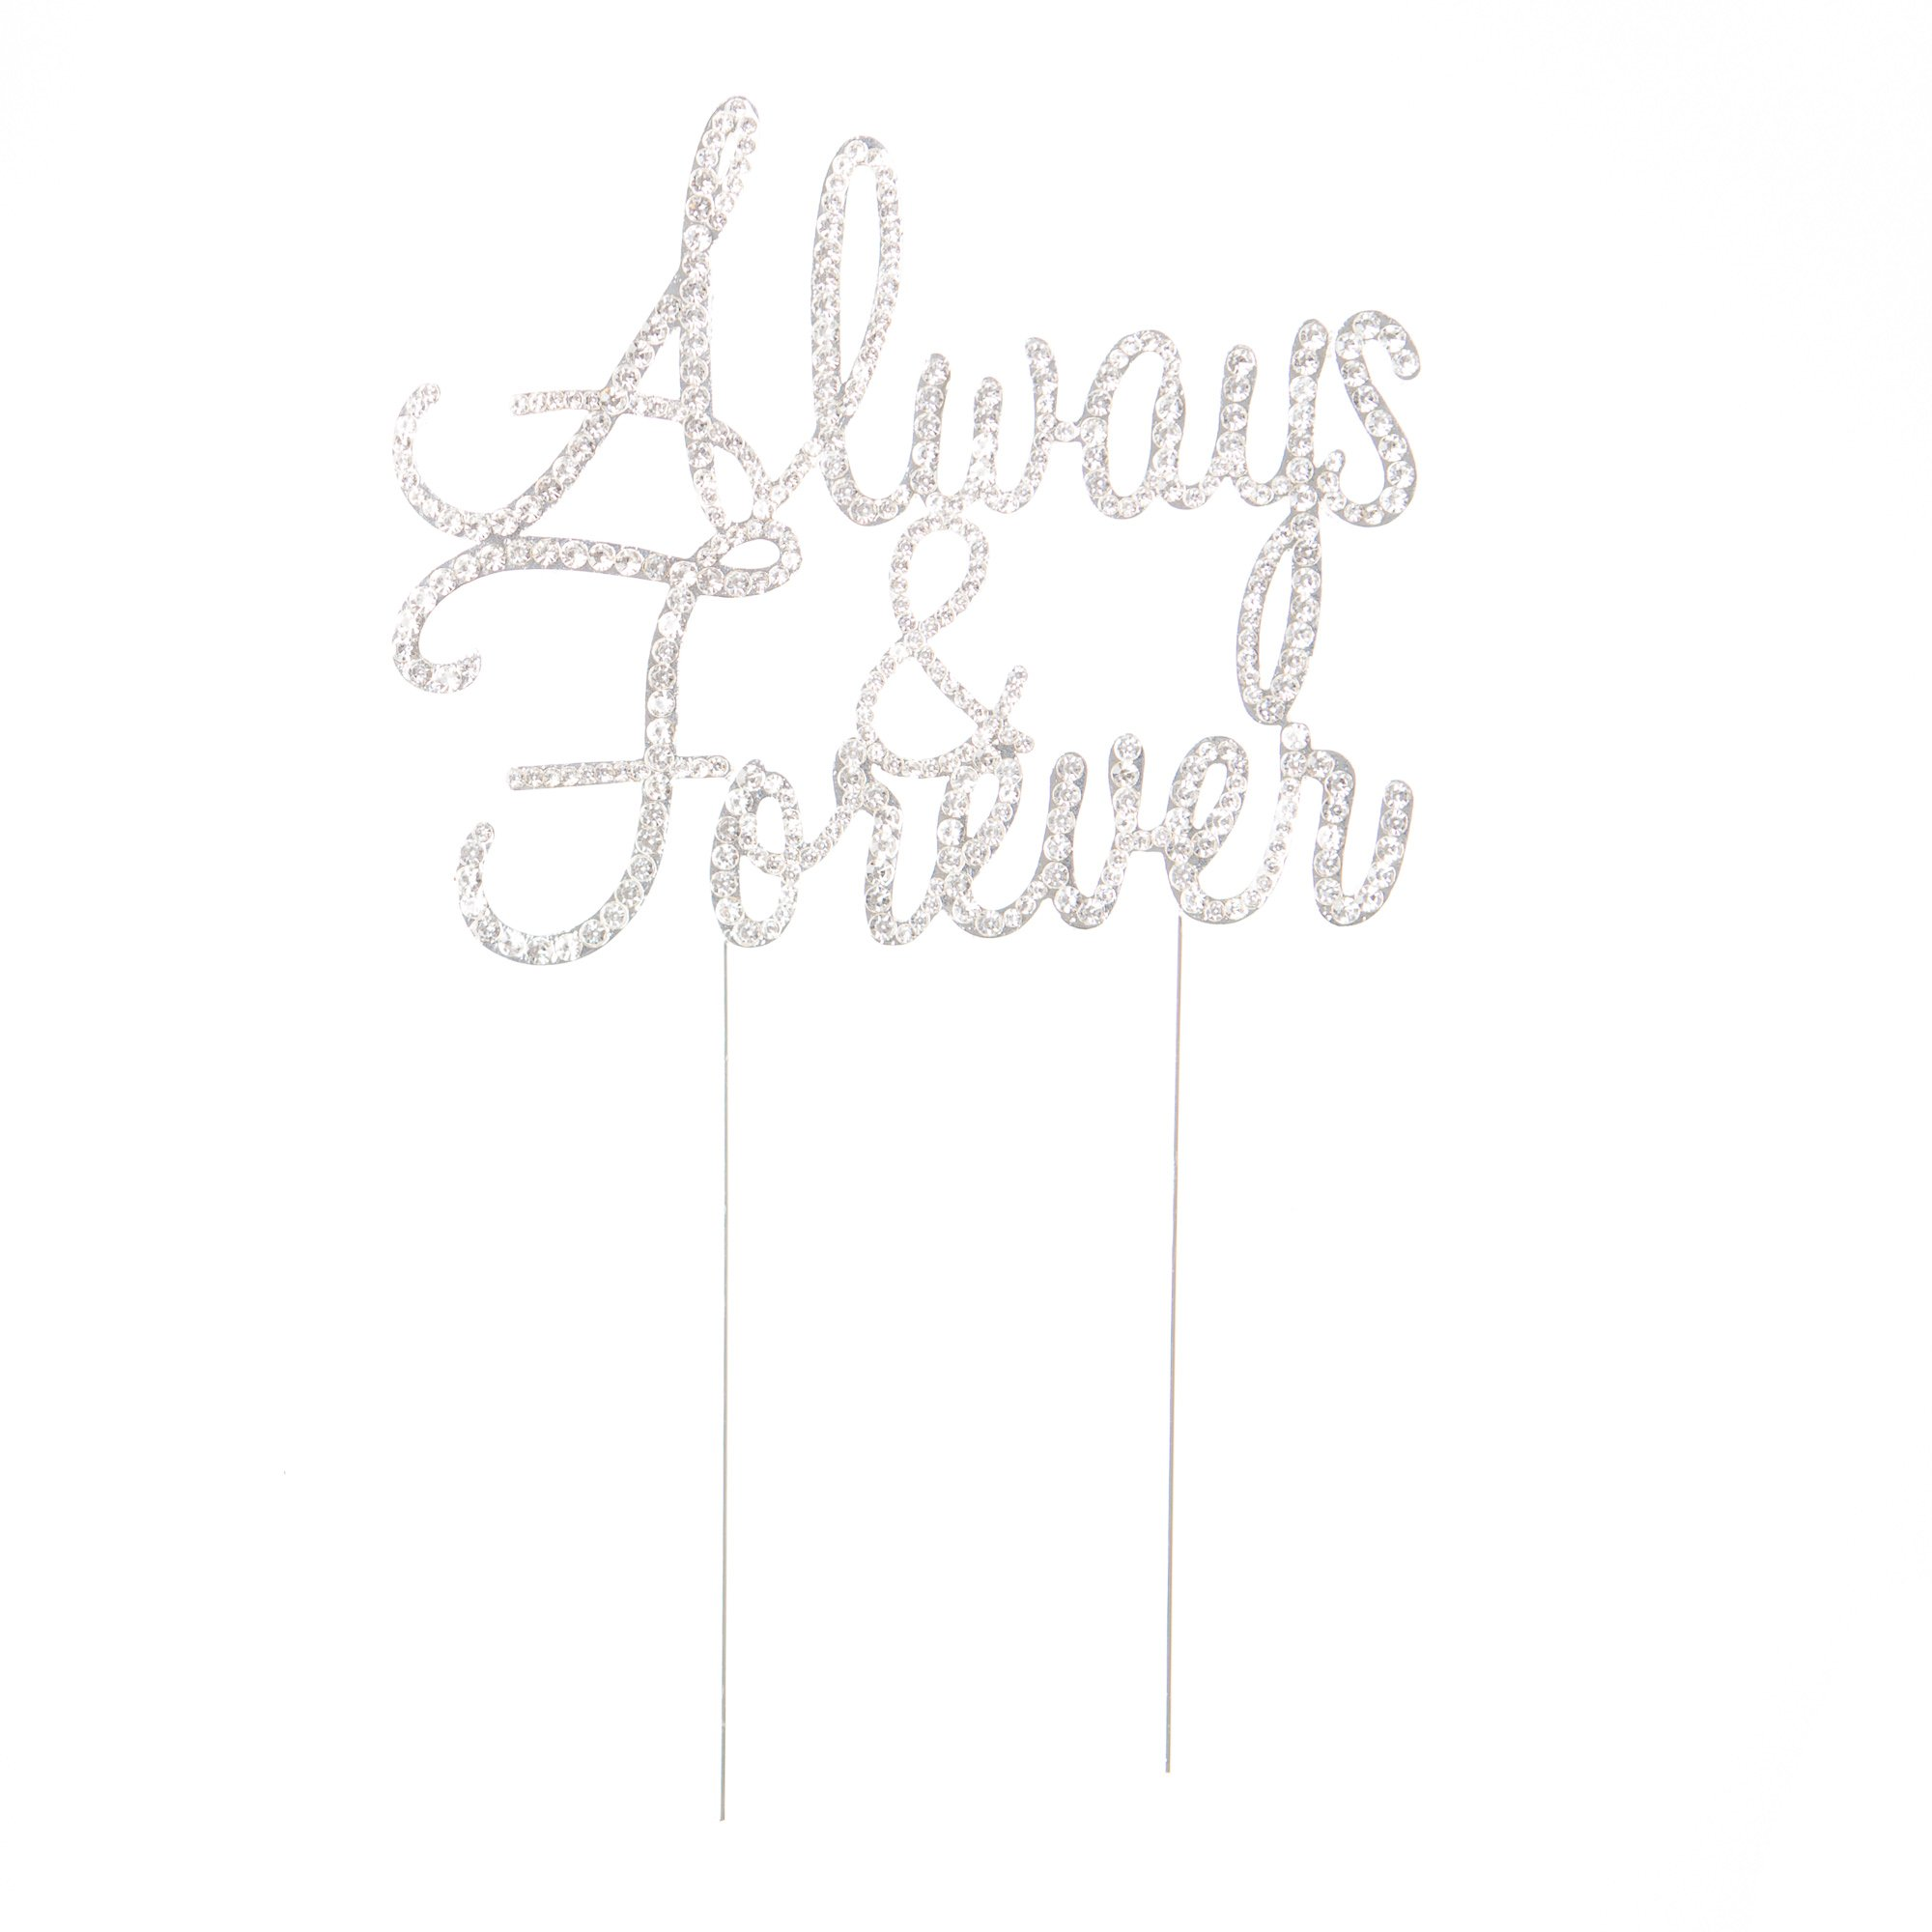 Ella Celebration Always and Forever Wedding Cake Topper, Silver Romantic Rhinestone Decoration (Always & Forever) (Silver) by Ella Celebration (Image #2)